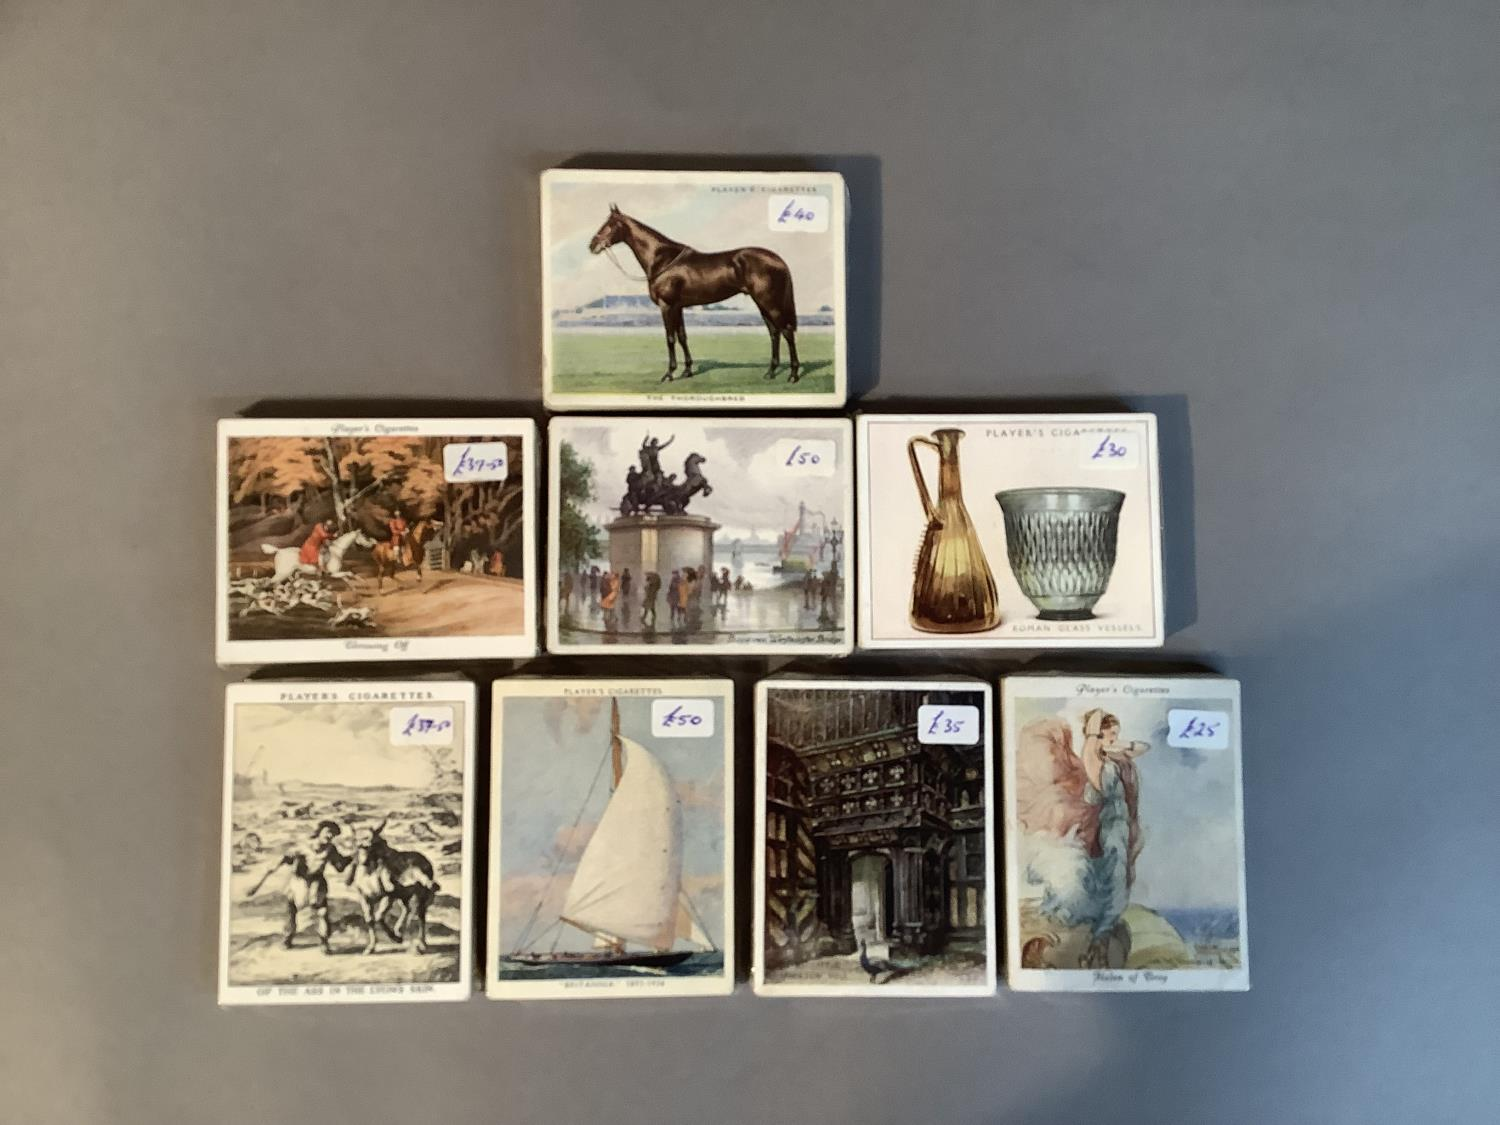 Cigarette cards, John Player & Sons, to include Picturesque London (25), Portals of the Past (25), - Image 2 of 3